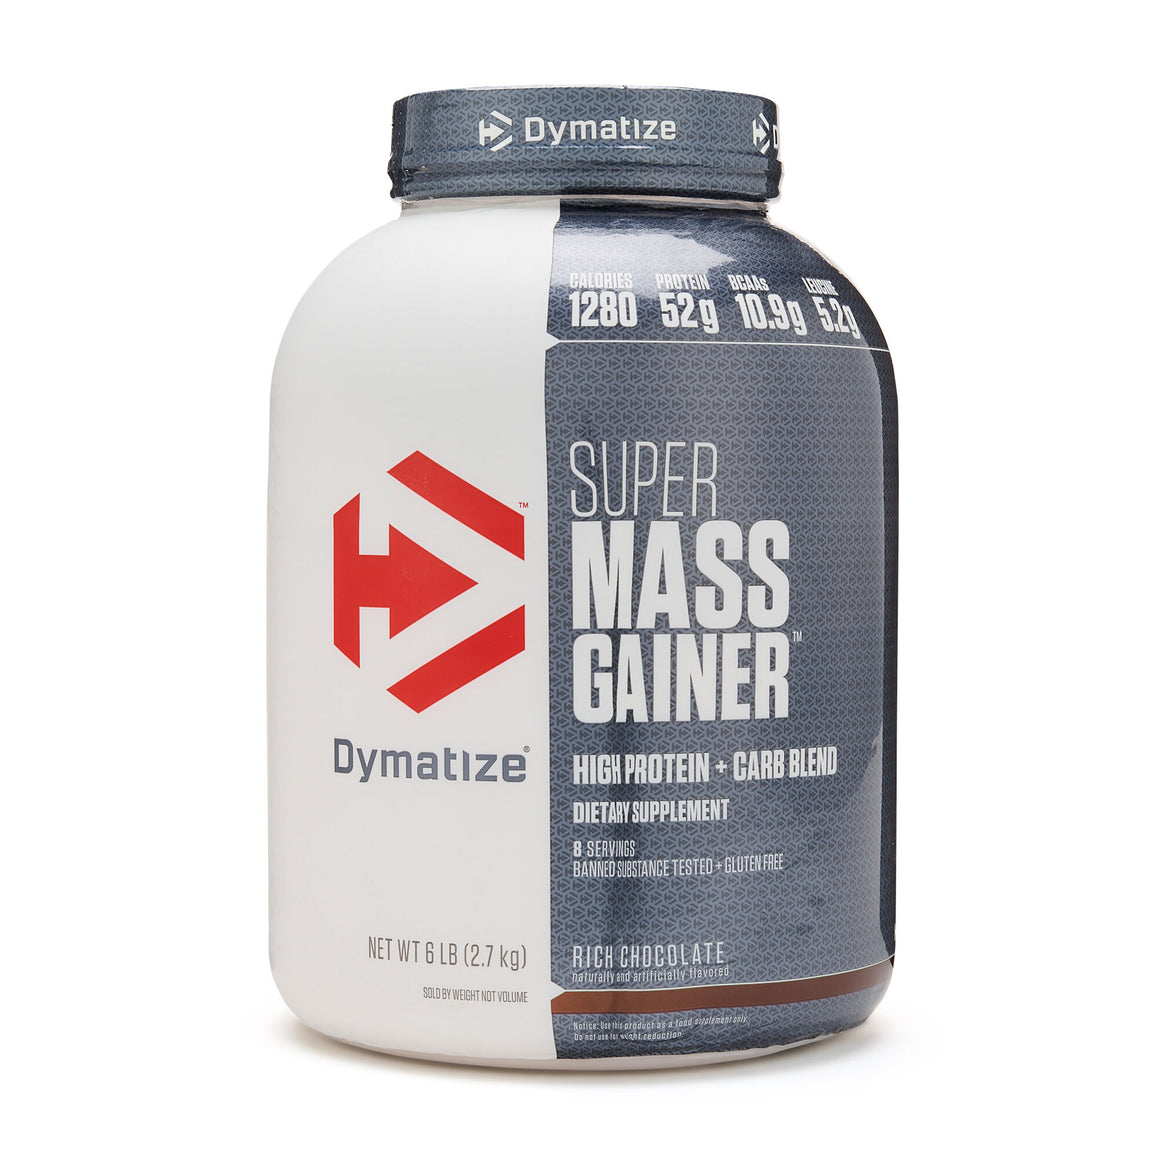 Dymatize Super mass Gainer, 6lbs (4409498566690)